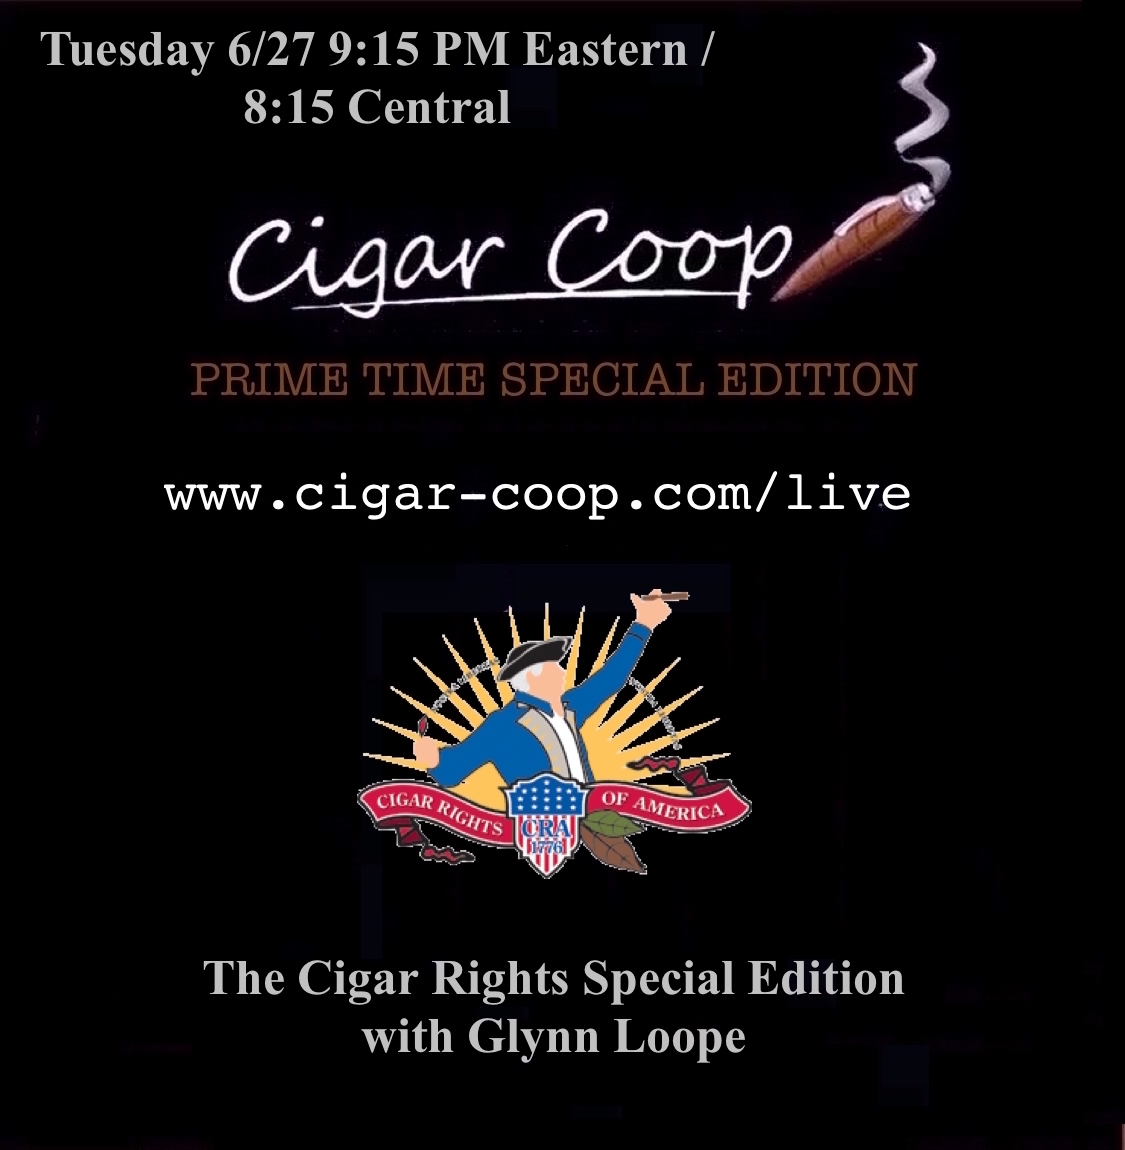 Announcement: Prime Time Special Edition 5: Tues 6/27 at 9:15 Eastern, 8:15 Central